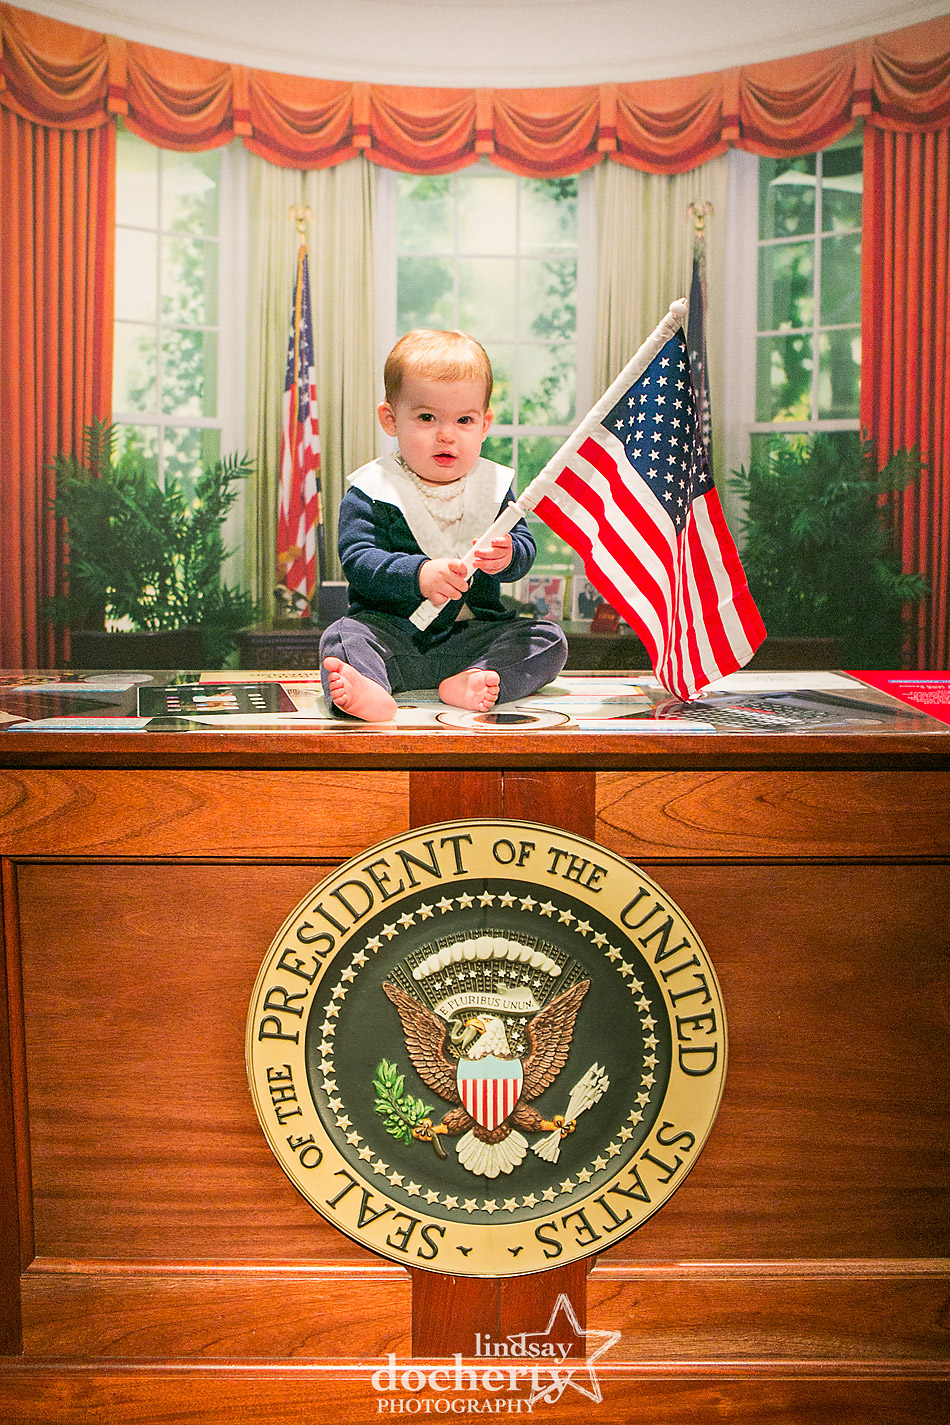 Baby Hillary Clinton in the Oval Office with a flag